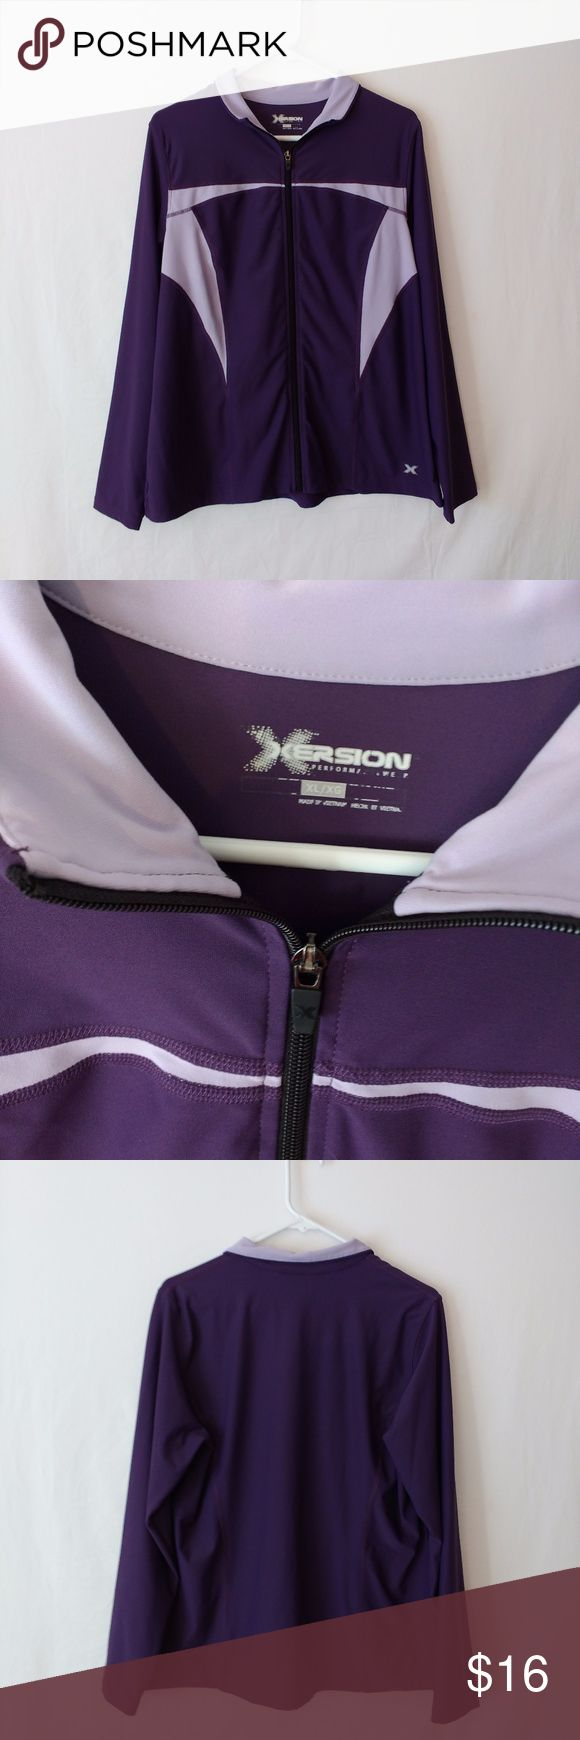 """Xersion Active Workout Jacket Purple XL Zipper XERSION Womens Jacket Size XL Long Sleeve Active/Workout with Zipper Front Purple Multi-Color. Photos are part of description. Feel free to ask questions. Athletic type jacket. 2 tone purple. No pockets.  Acrylic Blend. Measured flat approximately... Armpit to armpit: 22"""" Length from shoulder to bottom: 25"""" Sleeve length: 24""""  Ships quickly. Remember to check your measurements. Thanks :) *3 Xersion Jackets & Coats"""